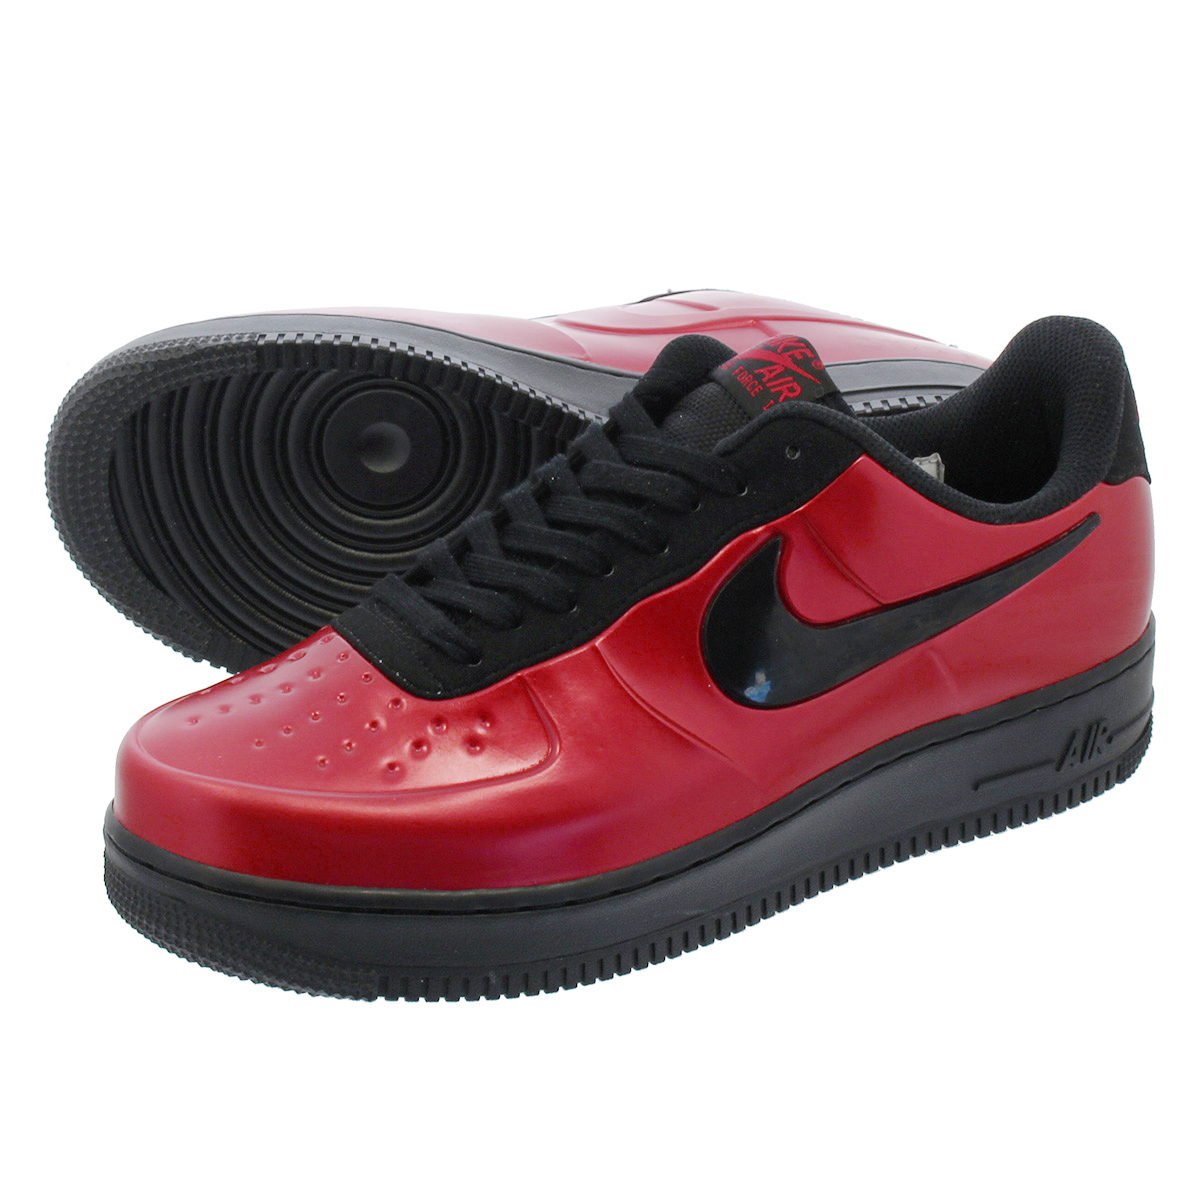 the latest 23a61 9ef80 NIKE AIR FORCE 1 FOAMPOSITE PRO CUP Nike air force 1 フォームポジットプロカップ GYM RED  BLACK aj3664-601